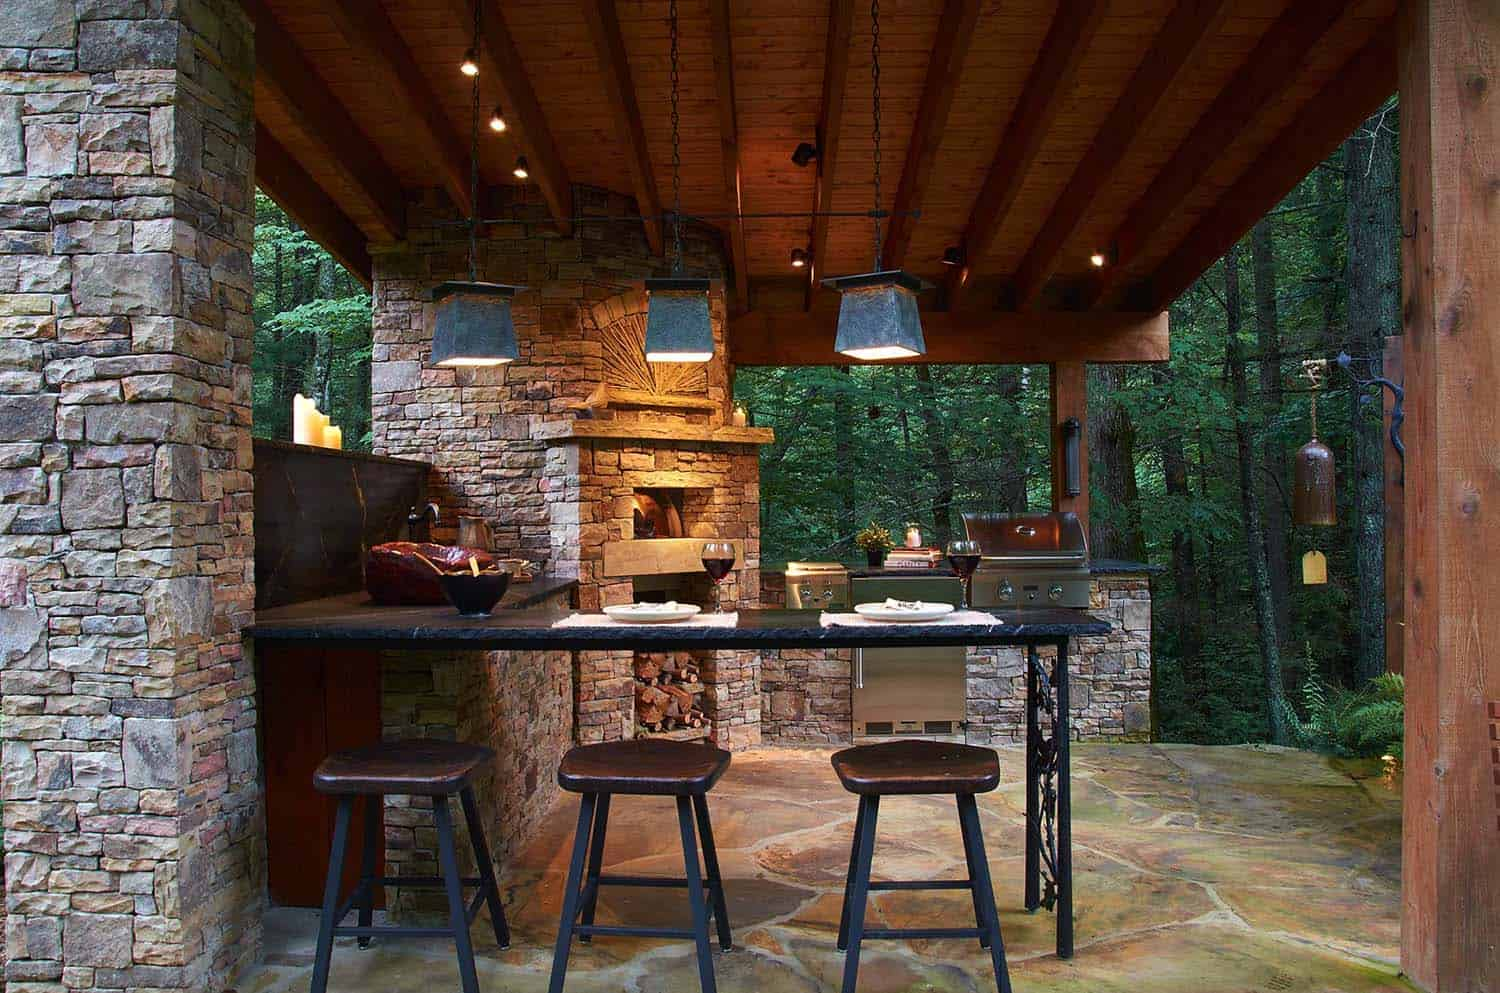 Outdoor Kitchens-Bars Entertaining-12-1 Kindesign.jpg